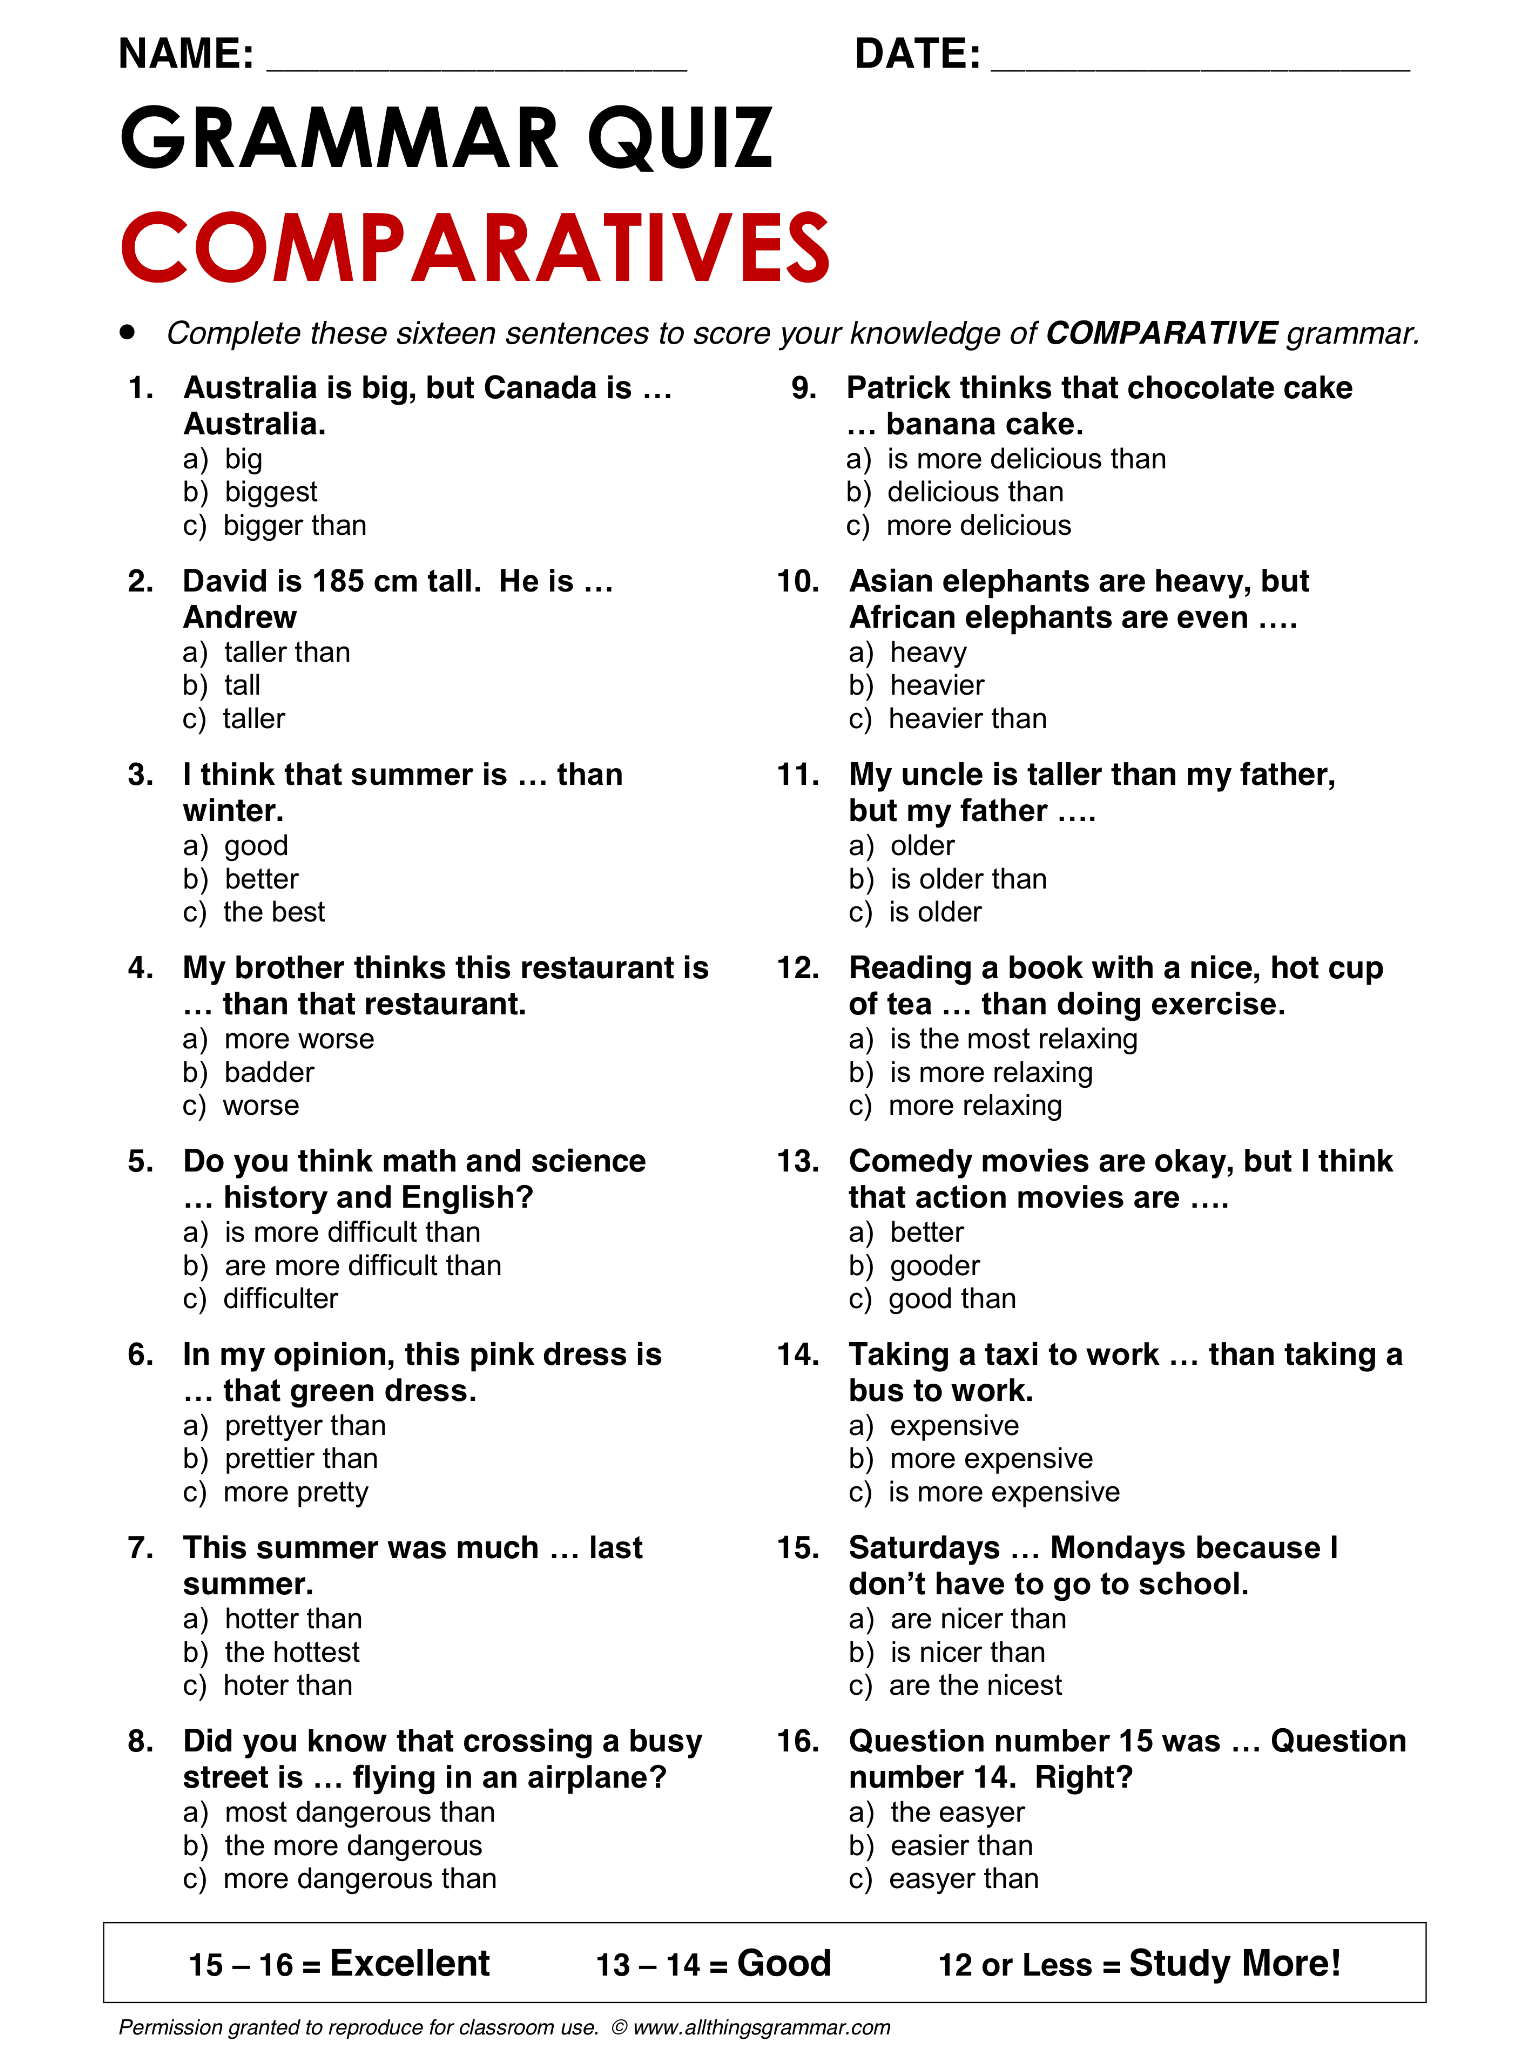 English Grammar Comparatives Lthingsgrammar